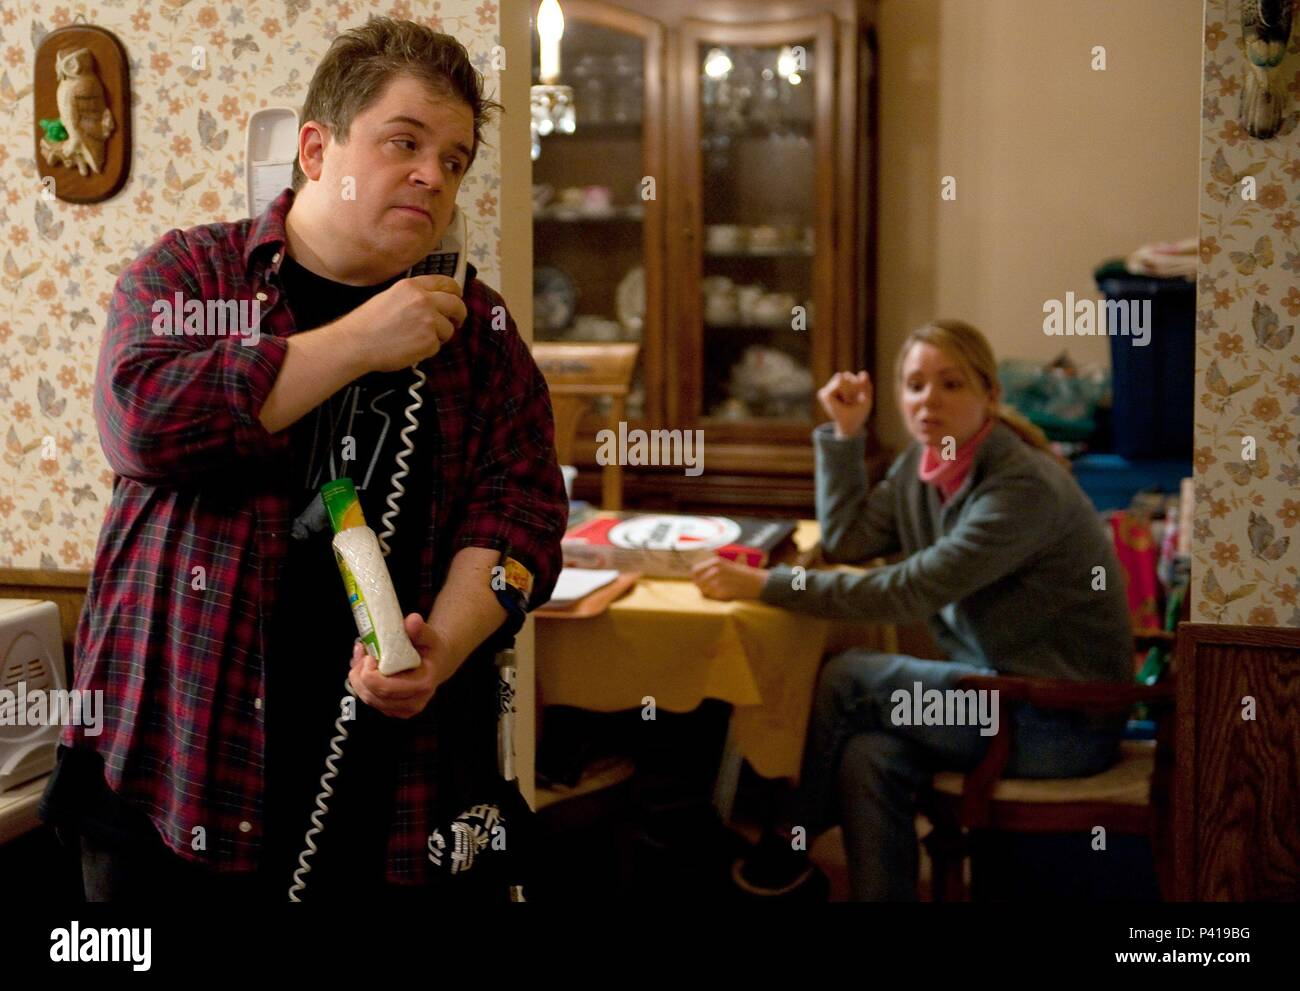 Original Film Title: YOUNG ADULT. English Title: YOUNG ADULT. Film Director:  JASON REITMAN. Year: 2011. Stars: PATTON OSWALT; COLLETE WOLFE.